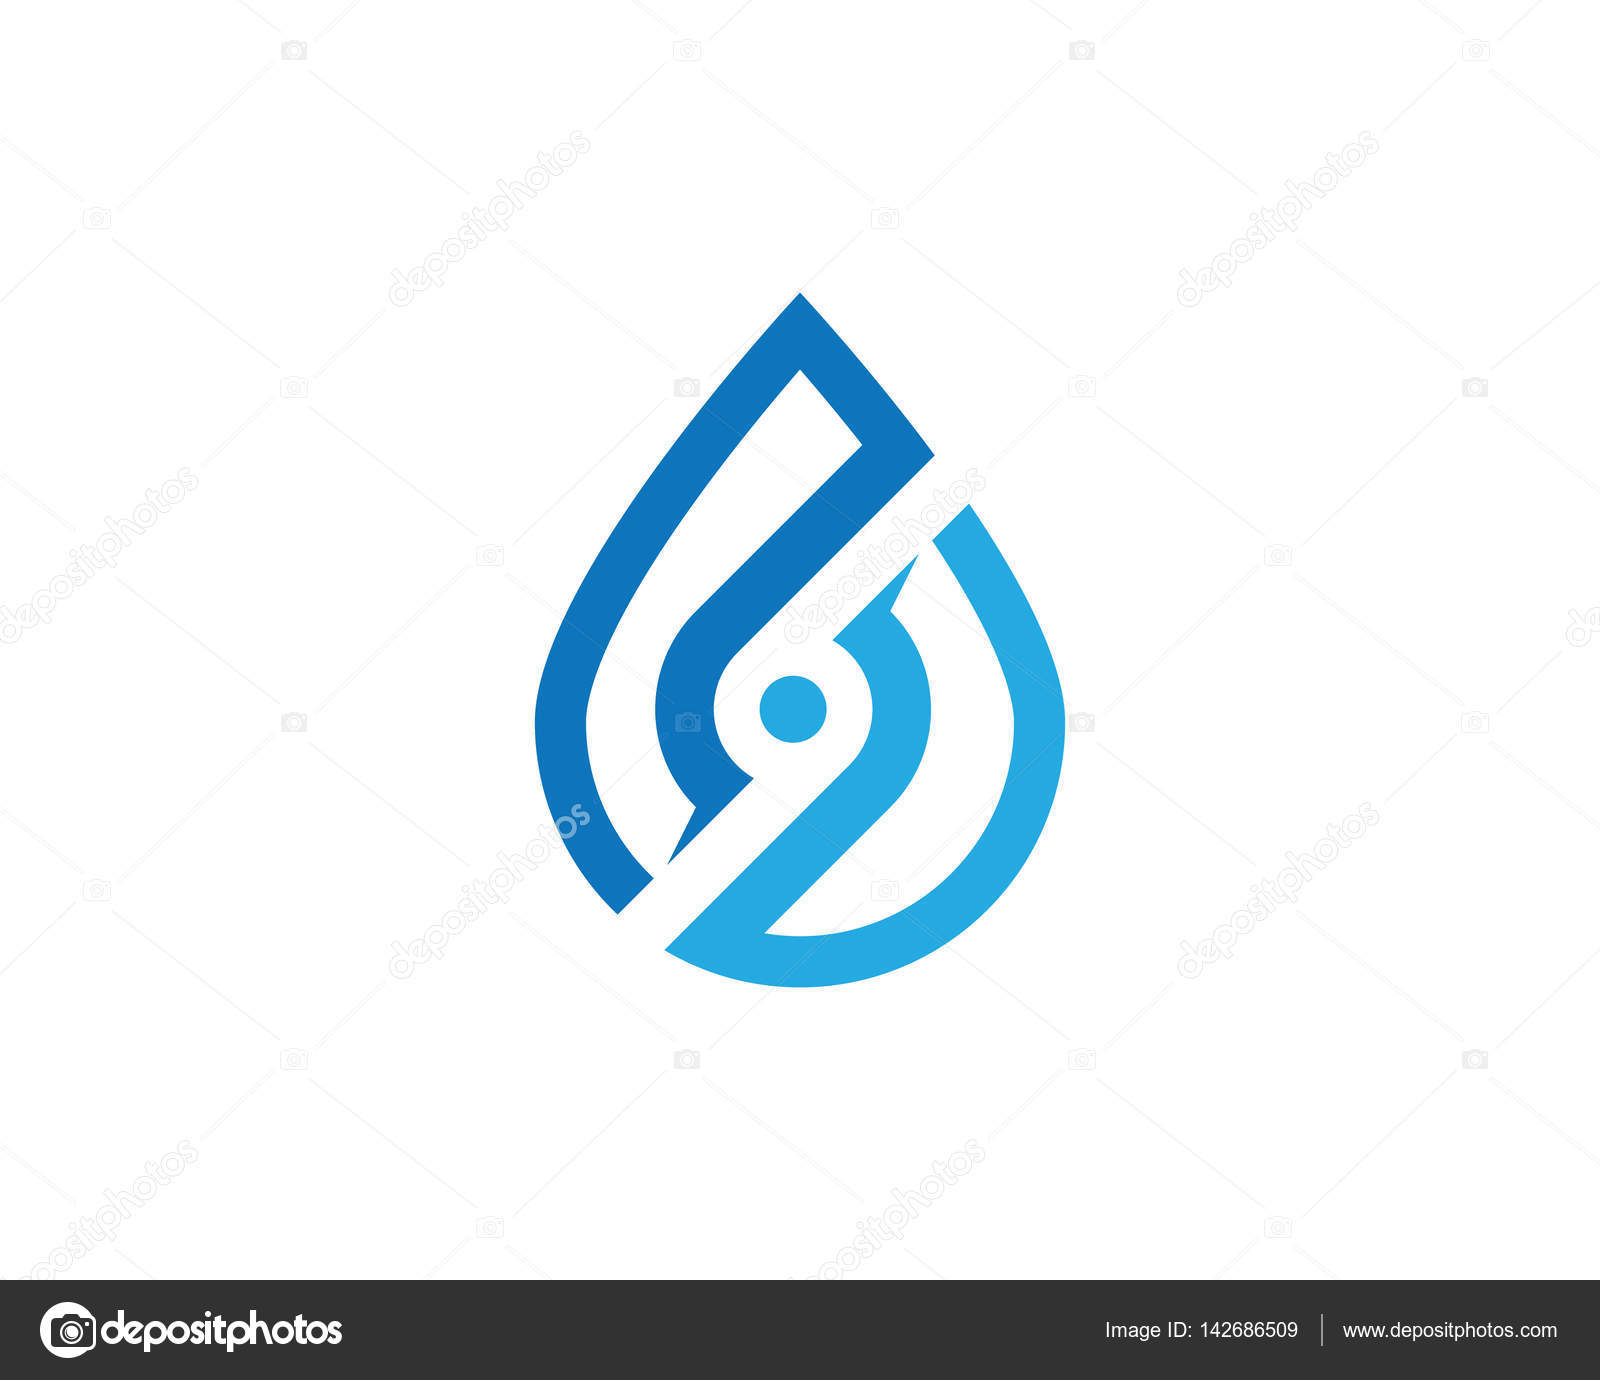 Water drops logo and symbols stock vector elaelo 142686509 water drops logo and symbols stock vector biocorpaavc Image collections